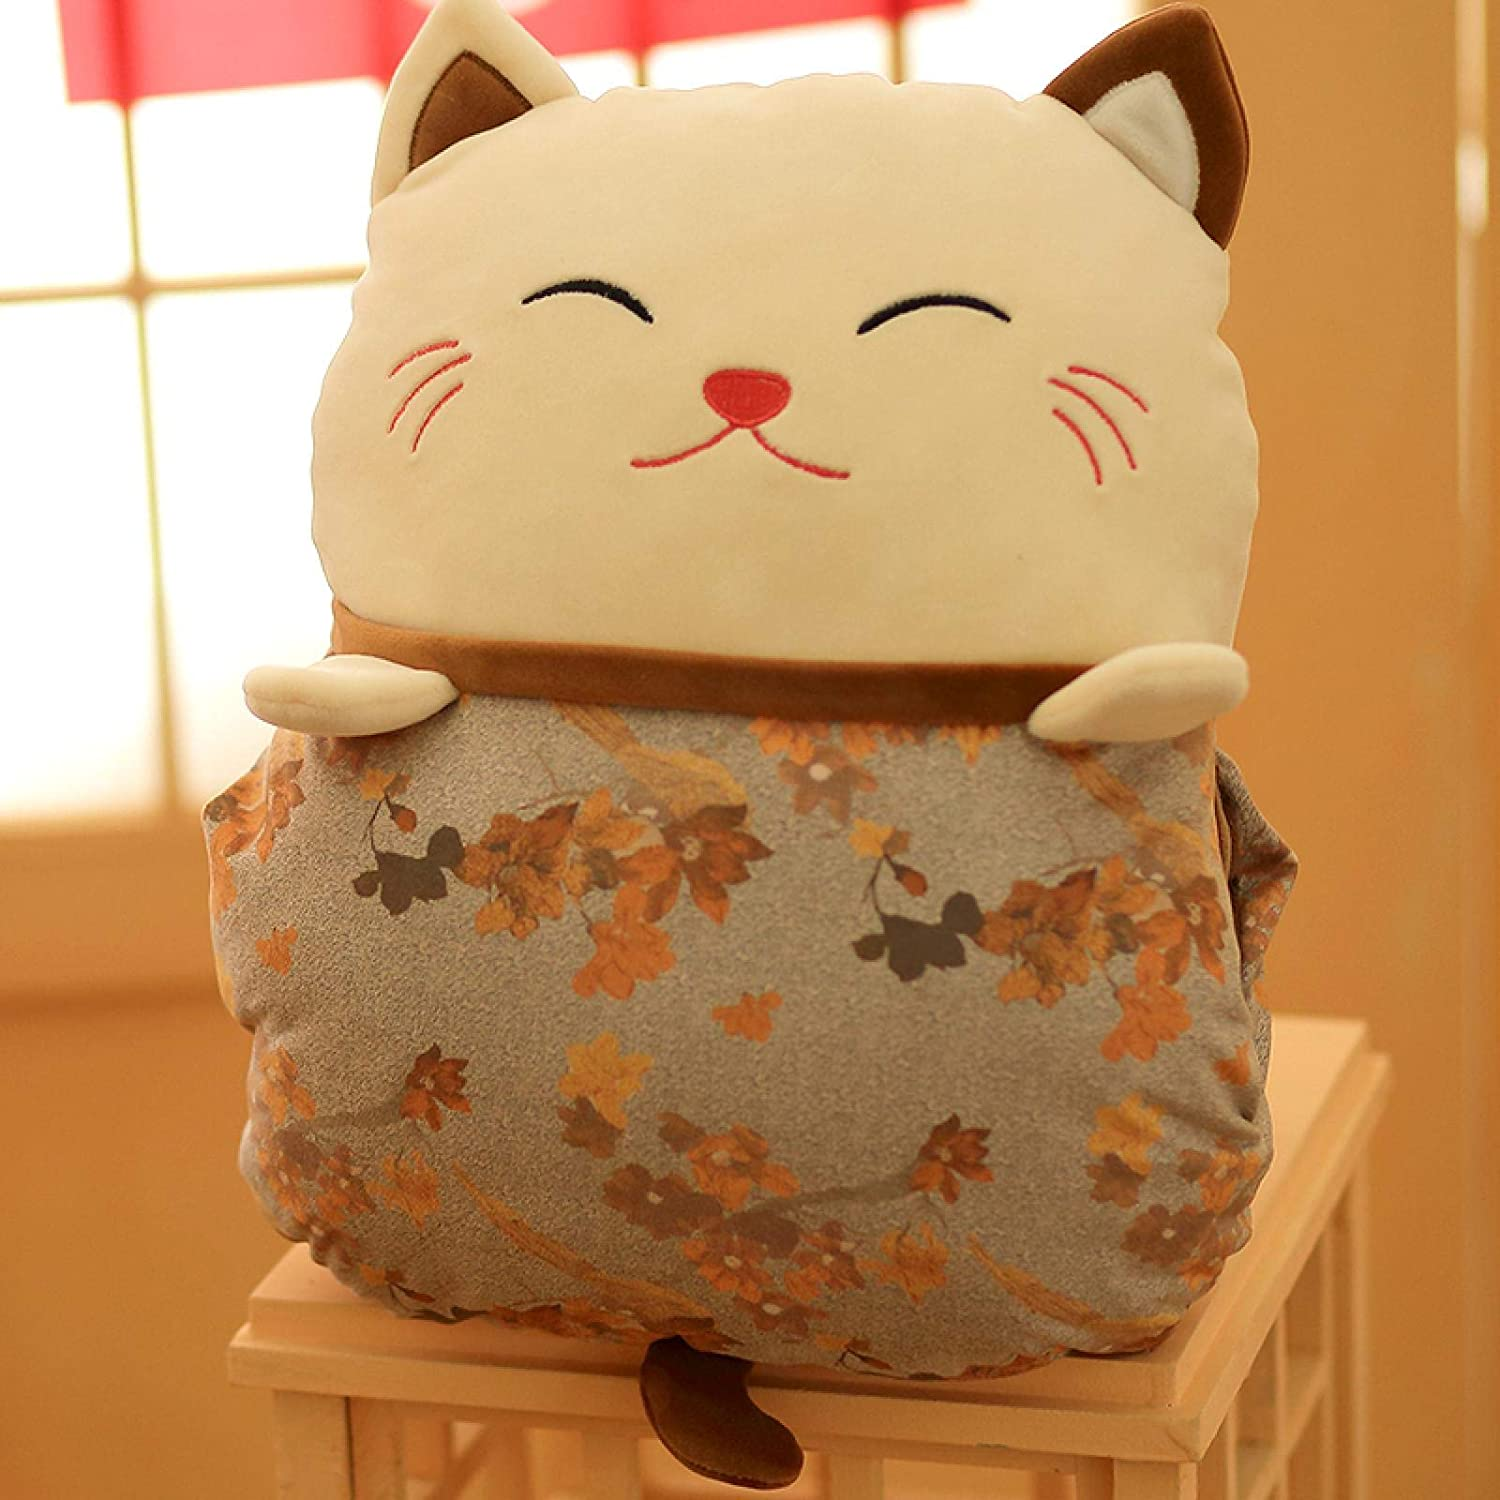 Lucky security Cat Decorative latest Pillows for Pill Couch Cute Plush